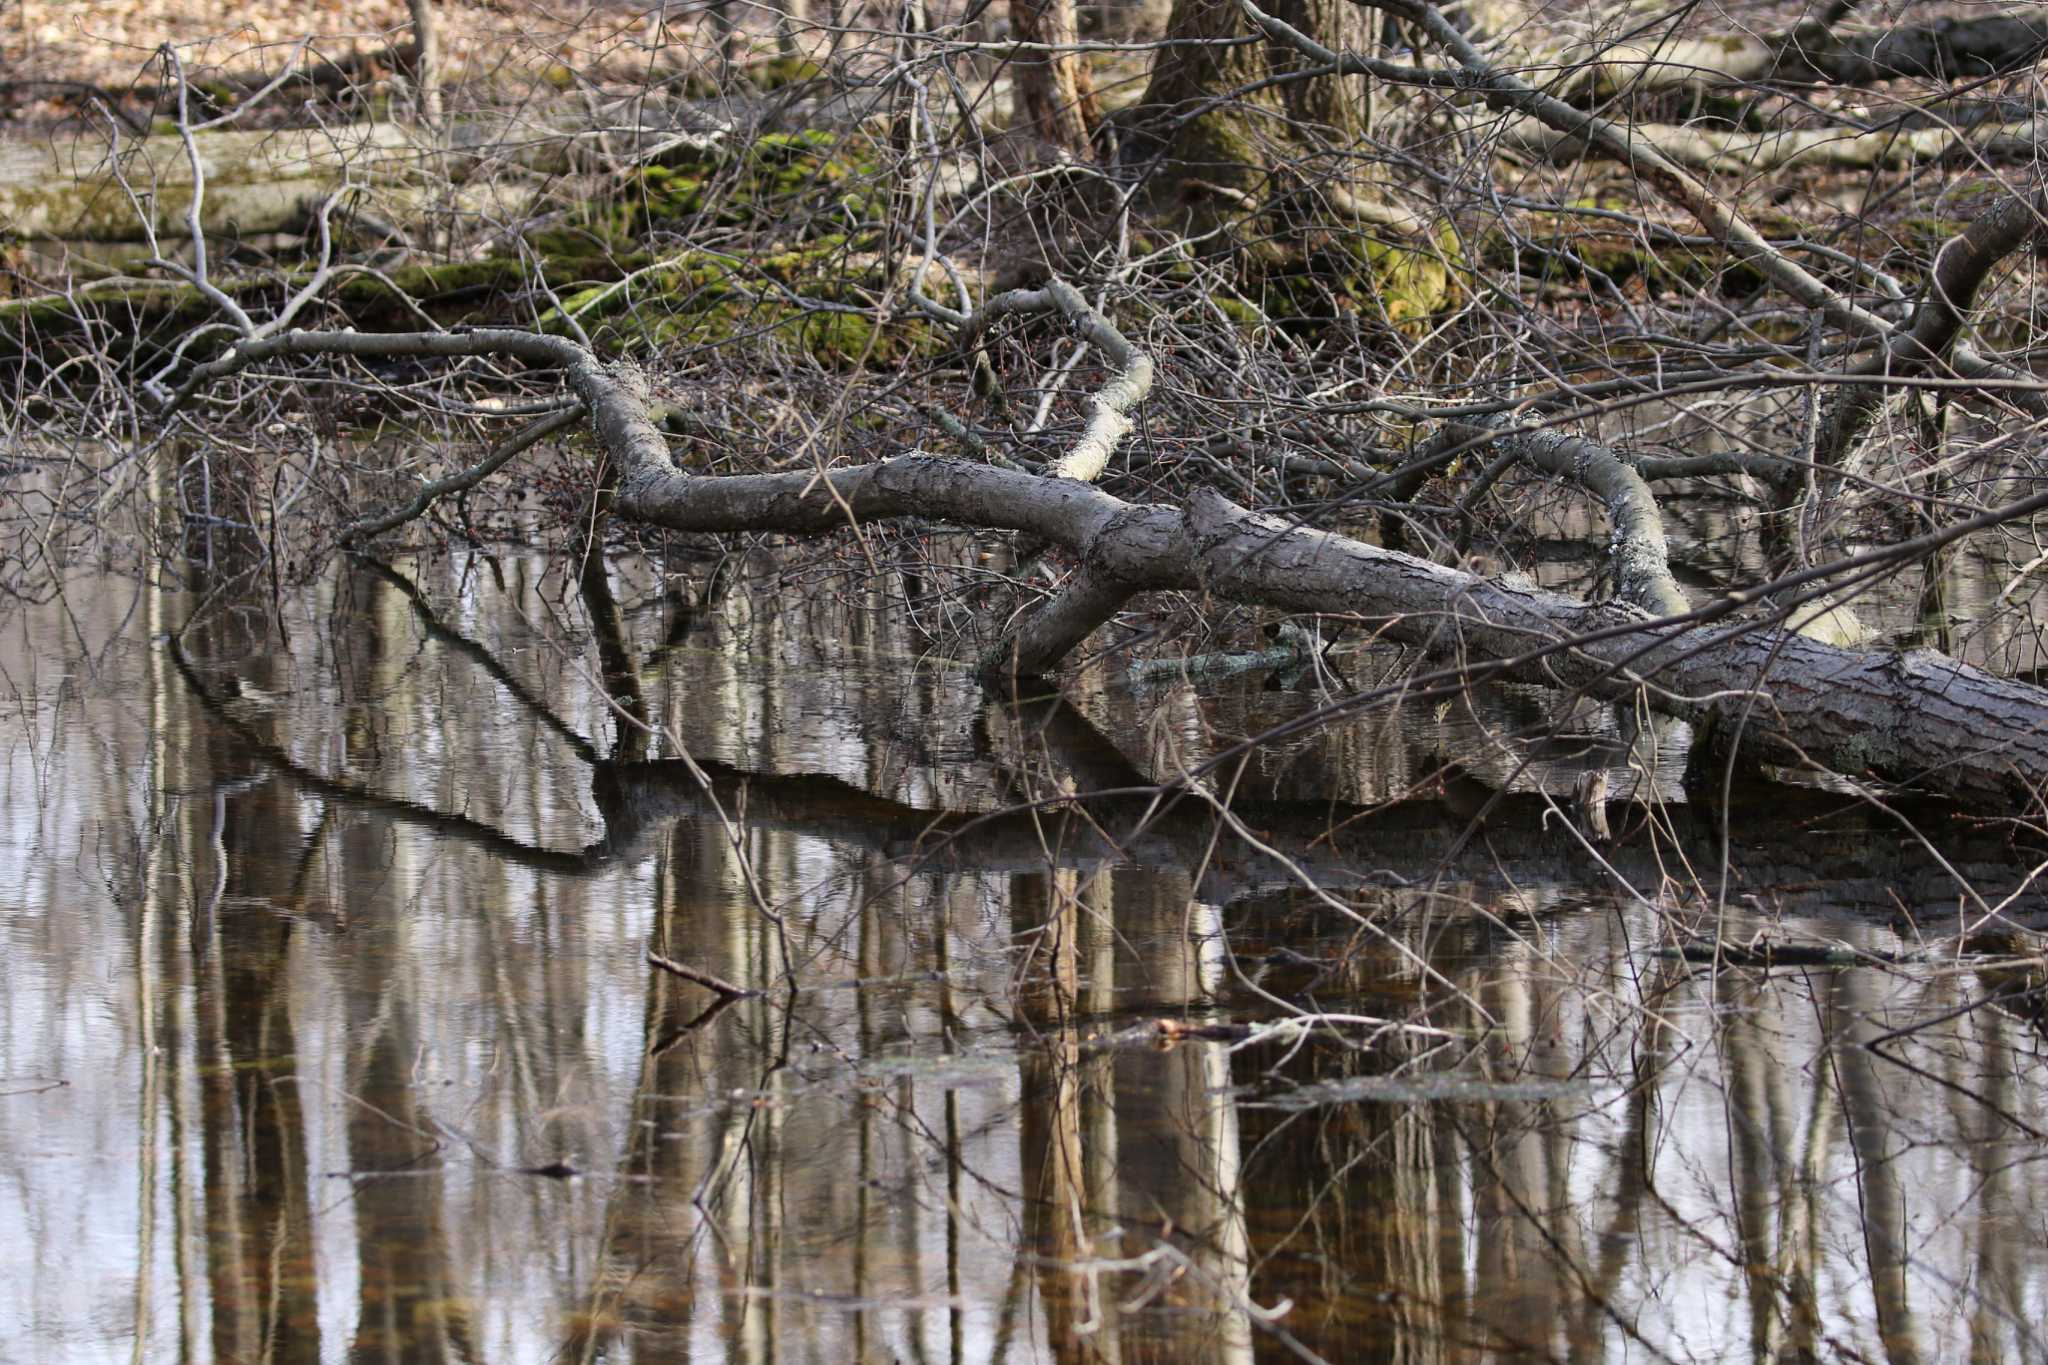 Greenwich Tree Conservancy welcomes spring with vernal pond tour | Greenwich Time